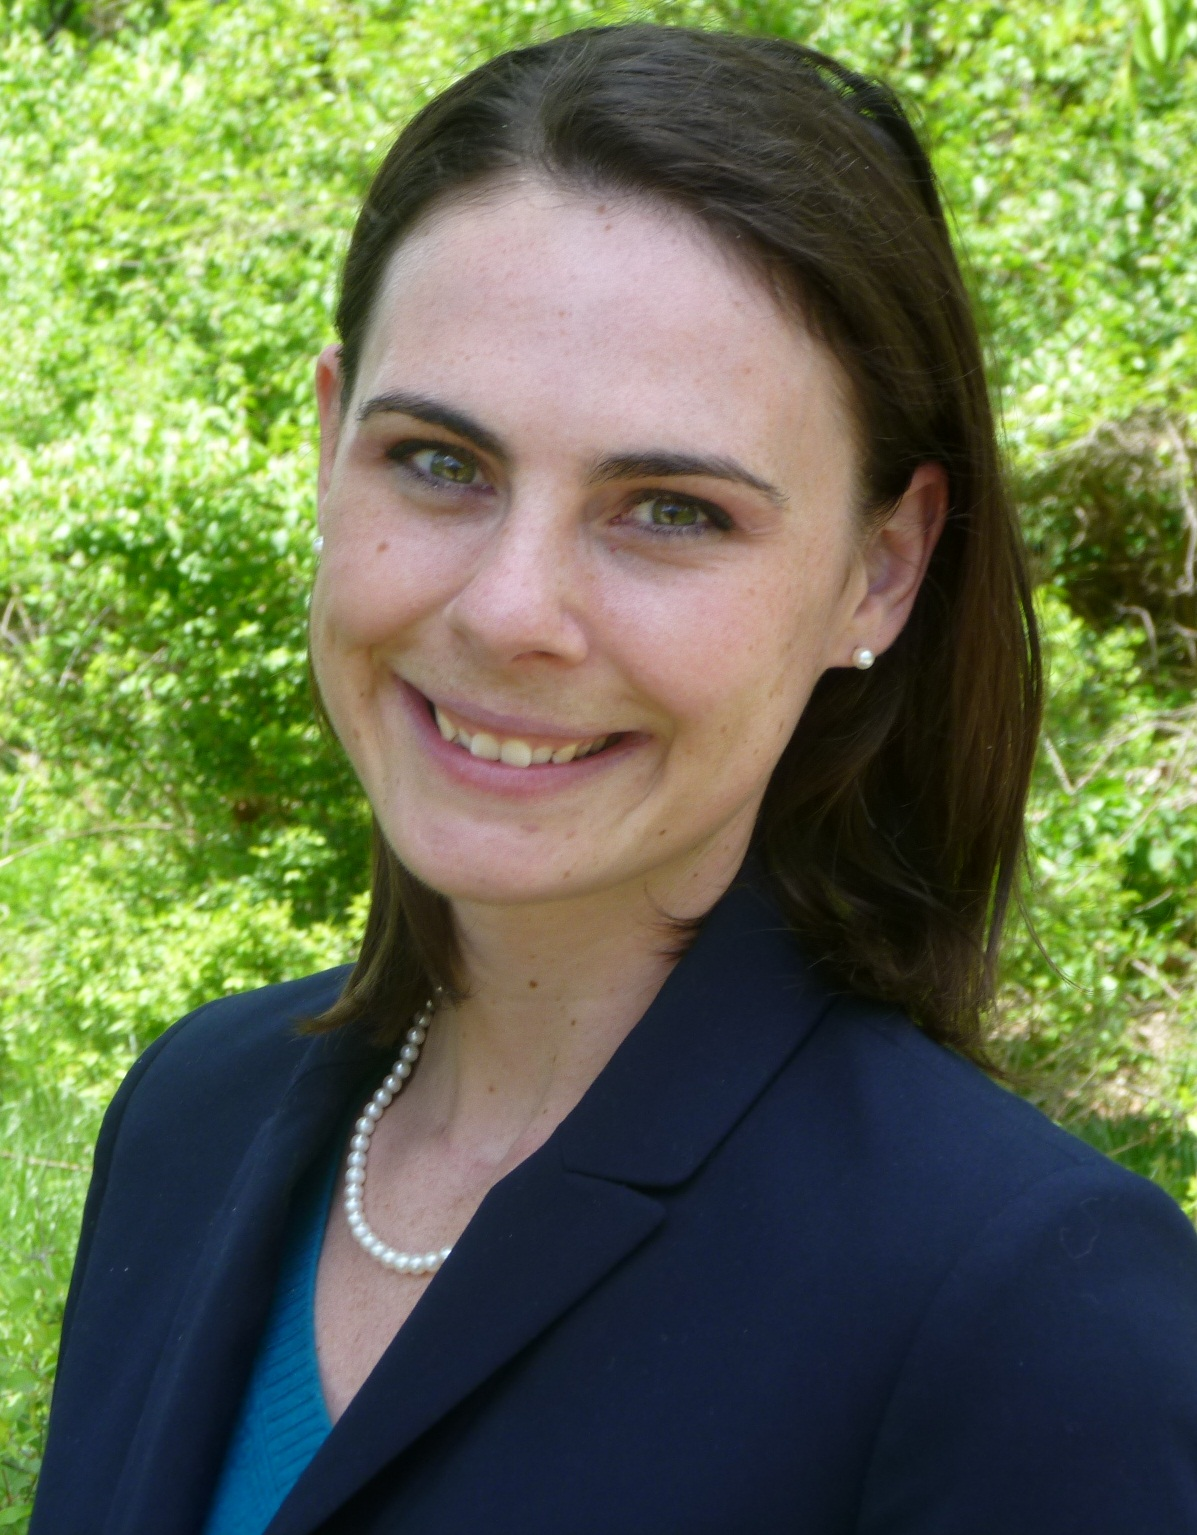 Headshot photo of Britt Ehrhardt in a suit jacket